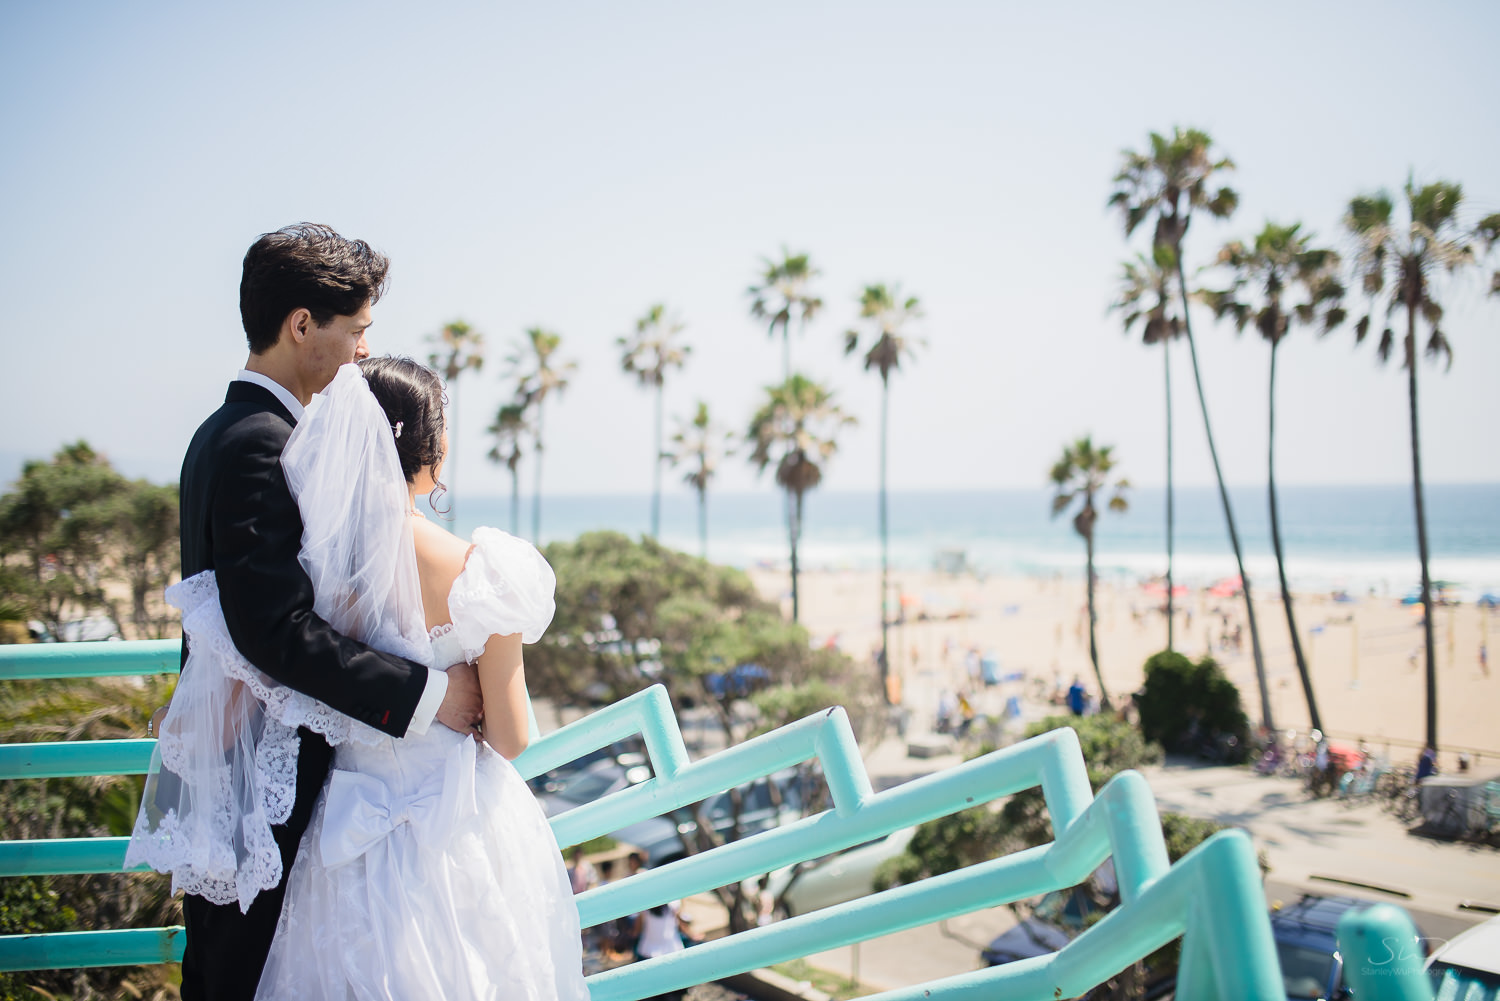 Redondo Beach Pier. Los Angeles and Orange County Engagement and Wedding Photographer.